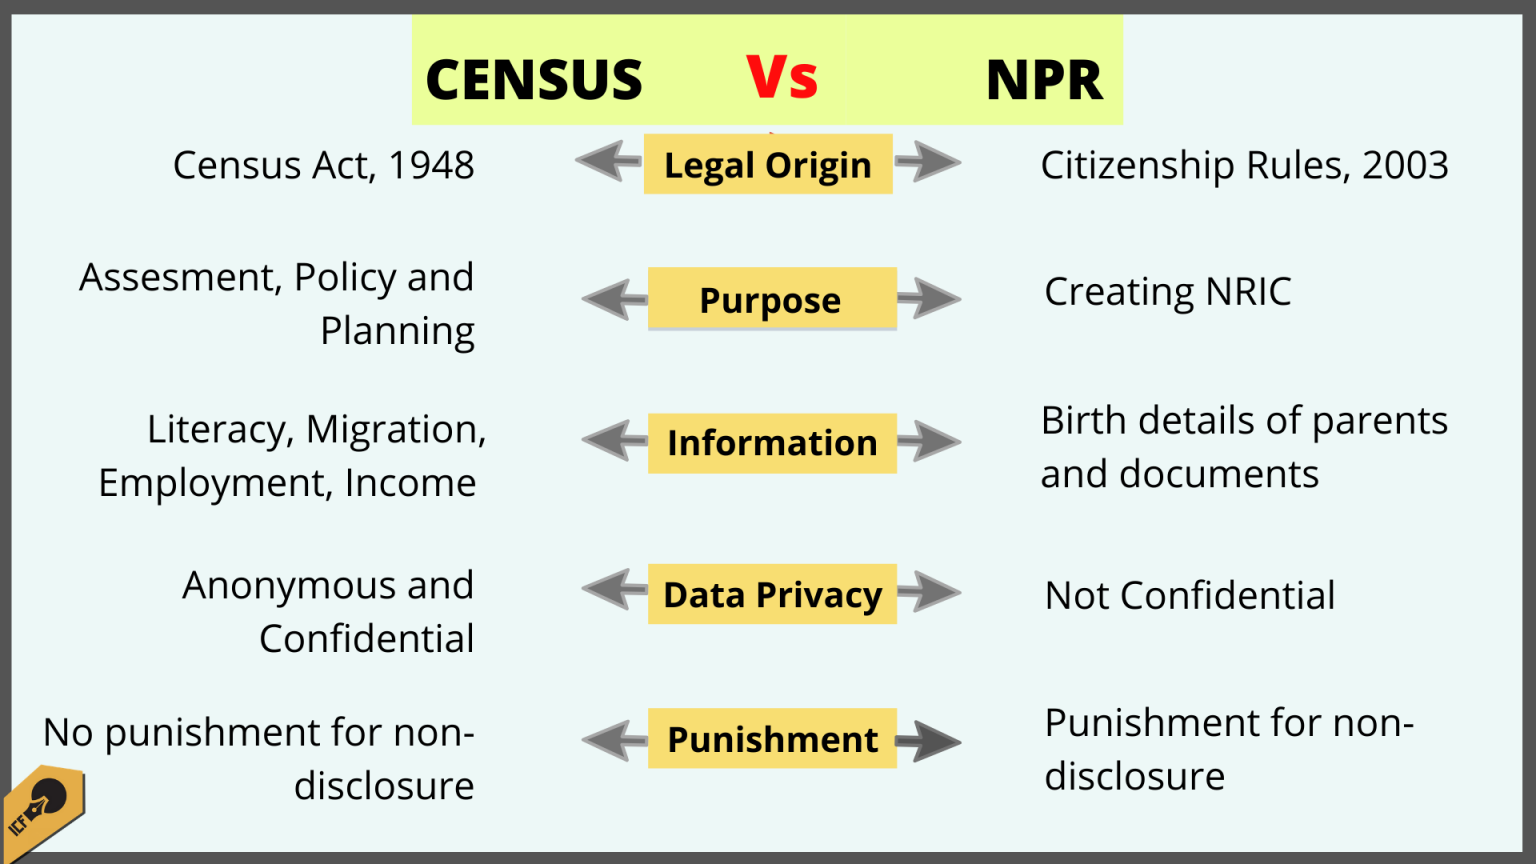 Census Vs NPR